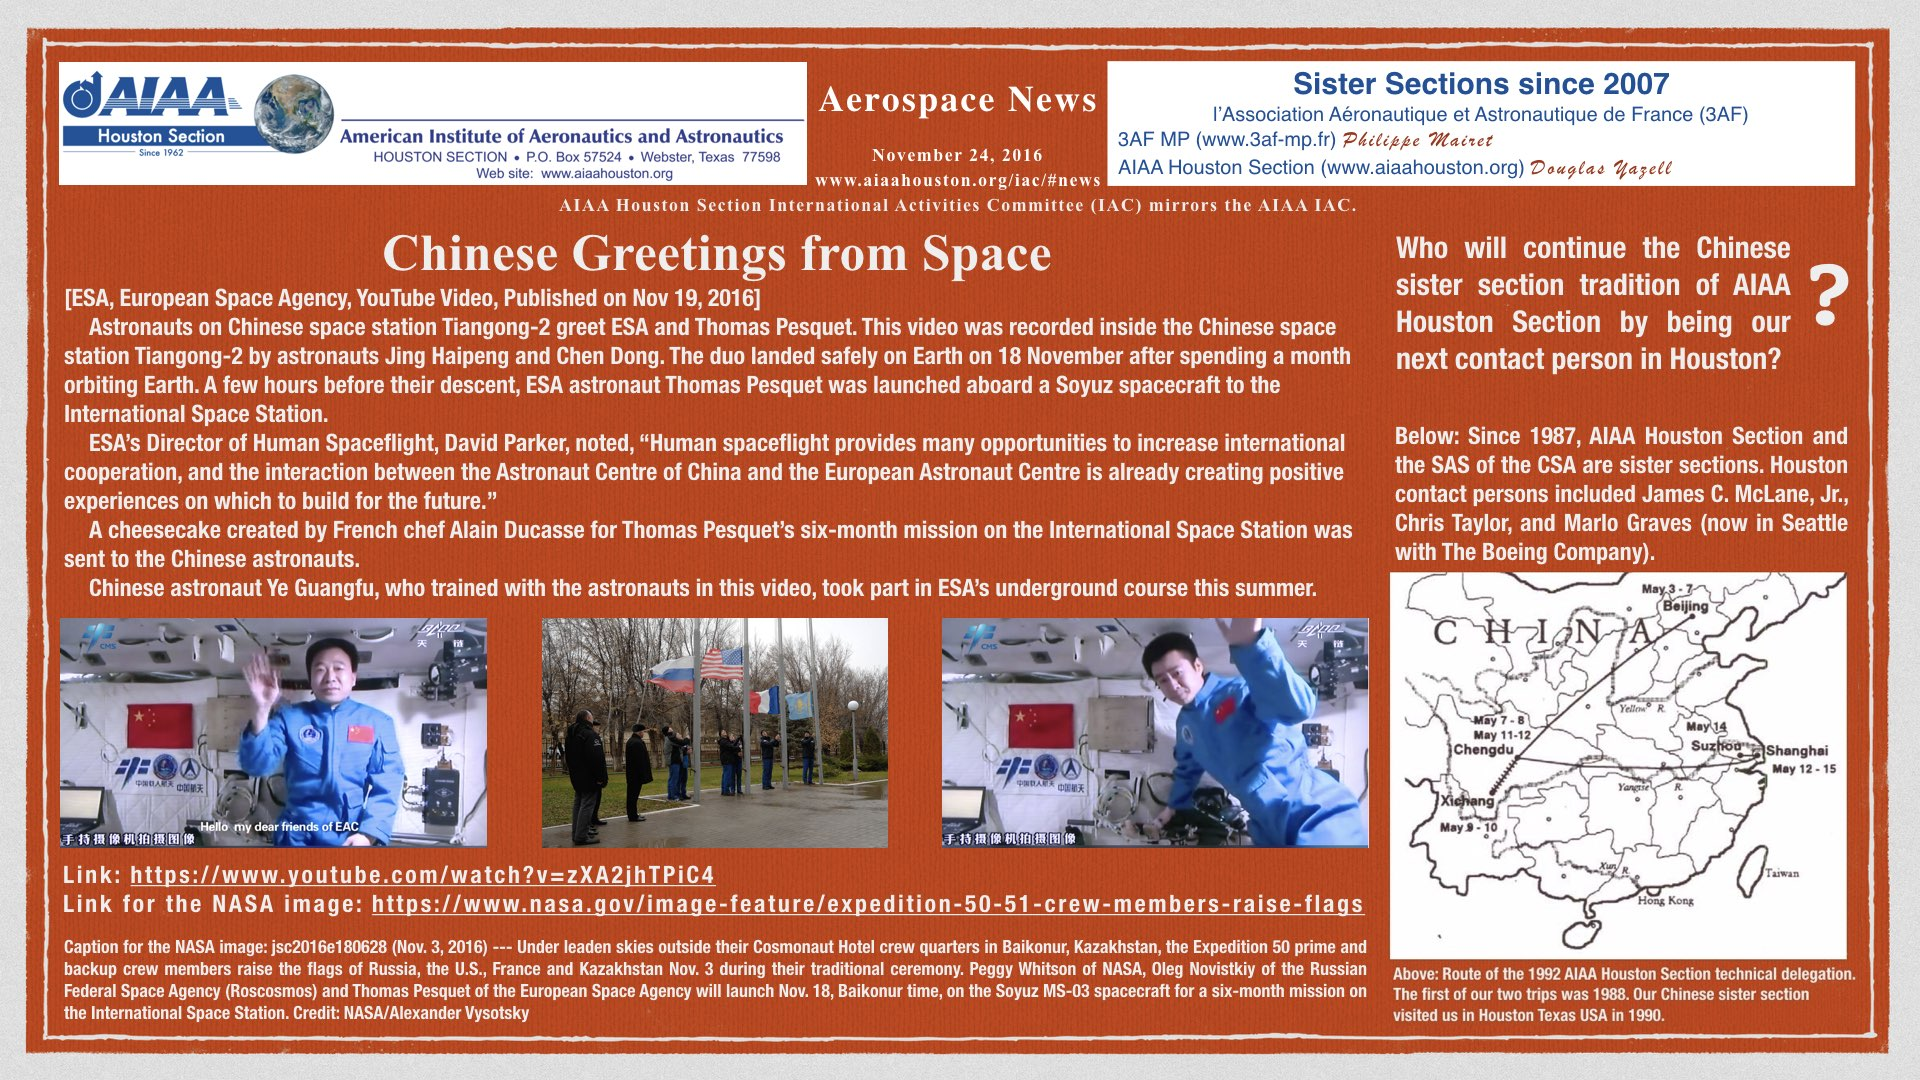 Above: Chinese Greetings from Space. (Click to zoom.)